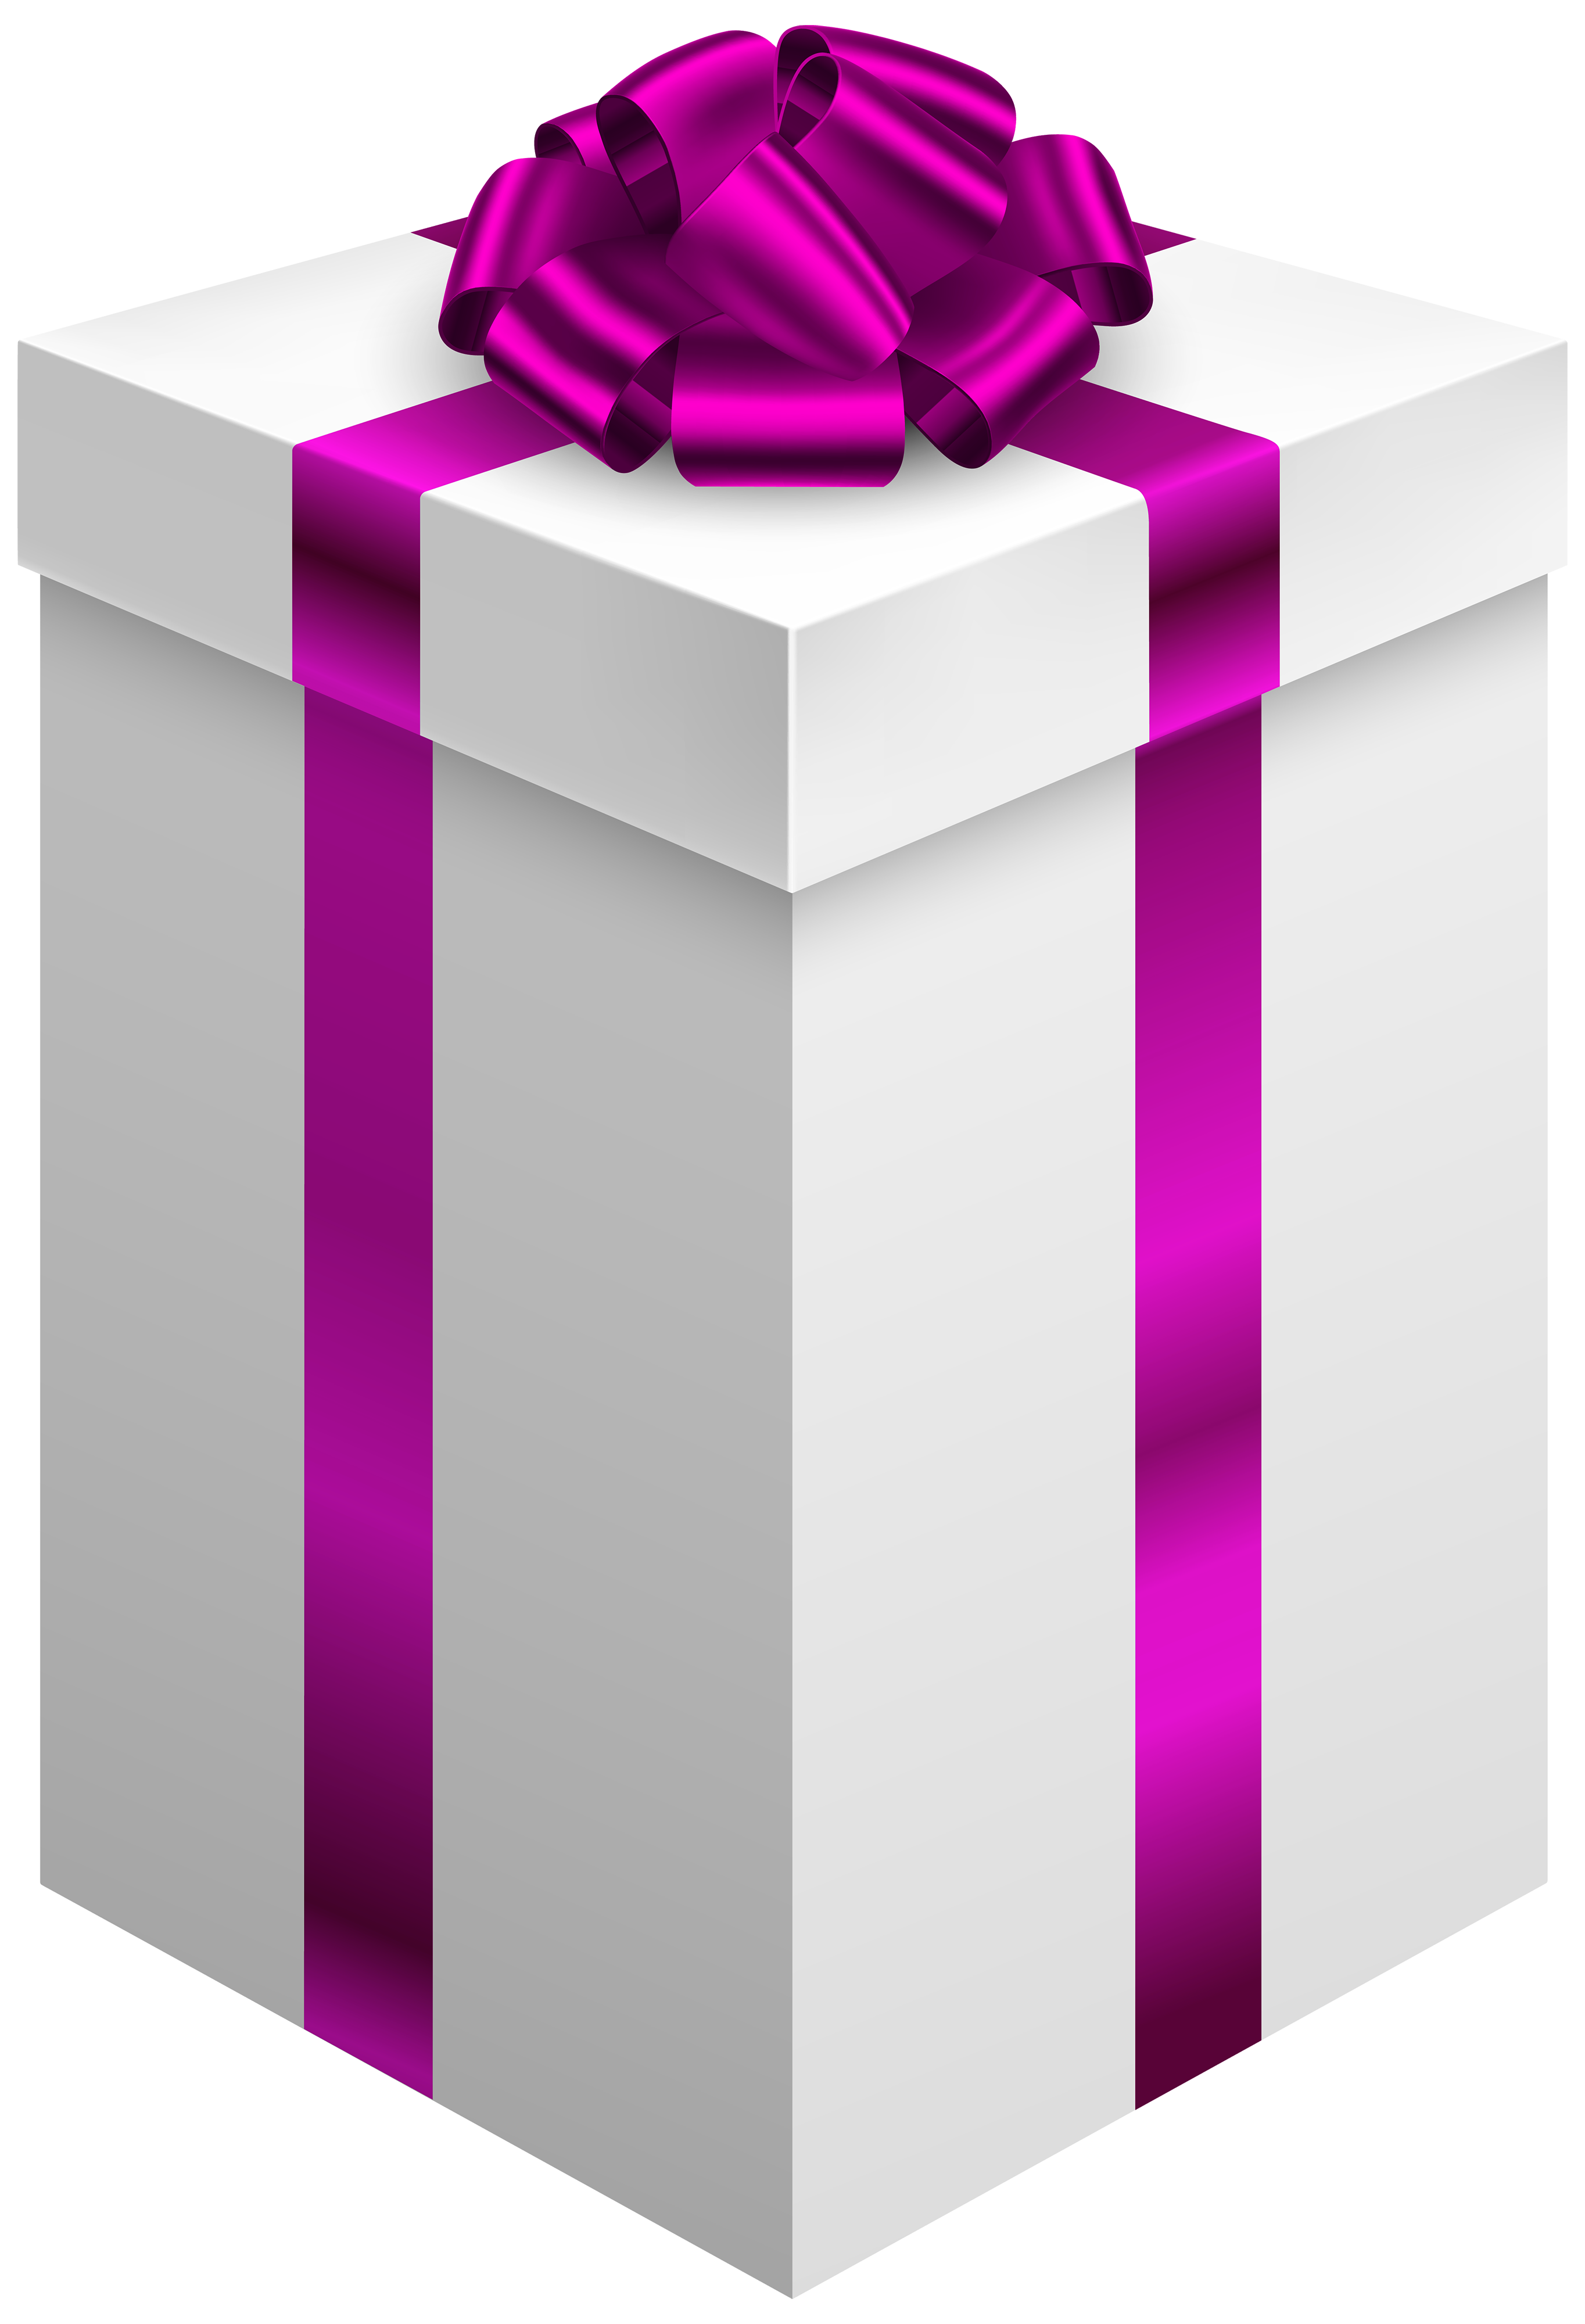 Gift clipart special gift. Box with purple bow